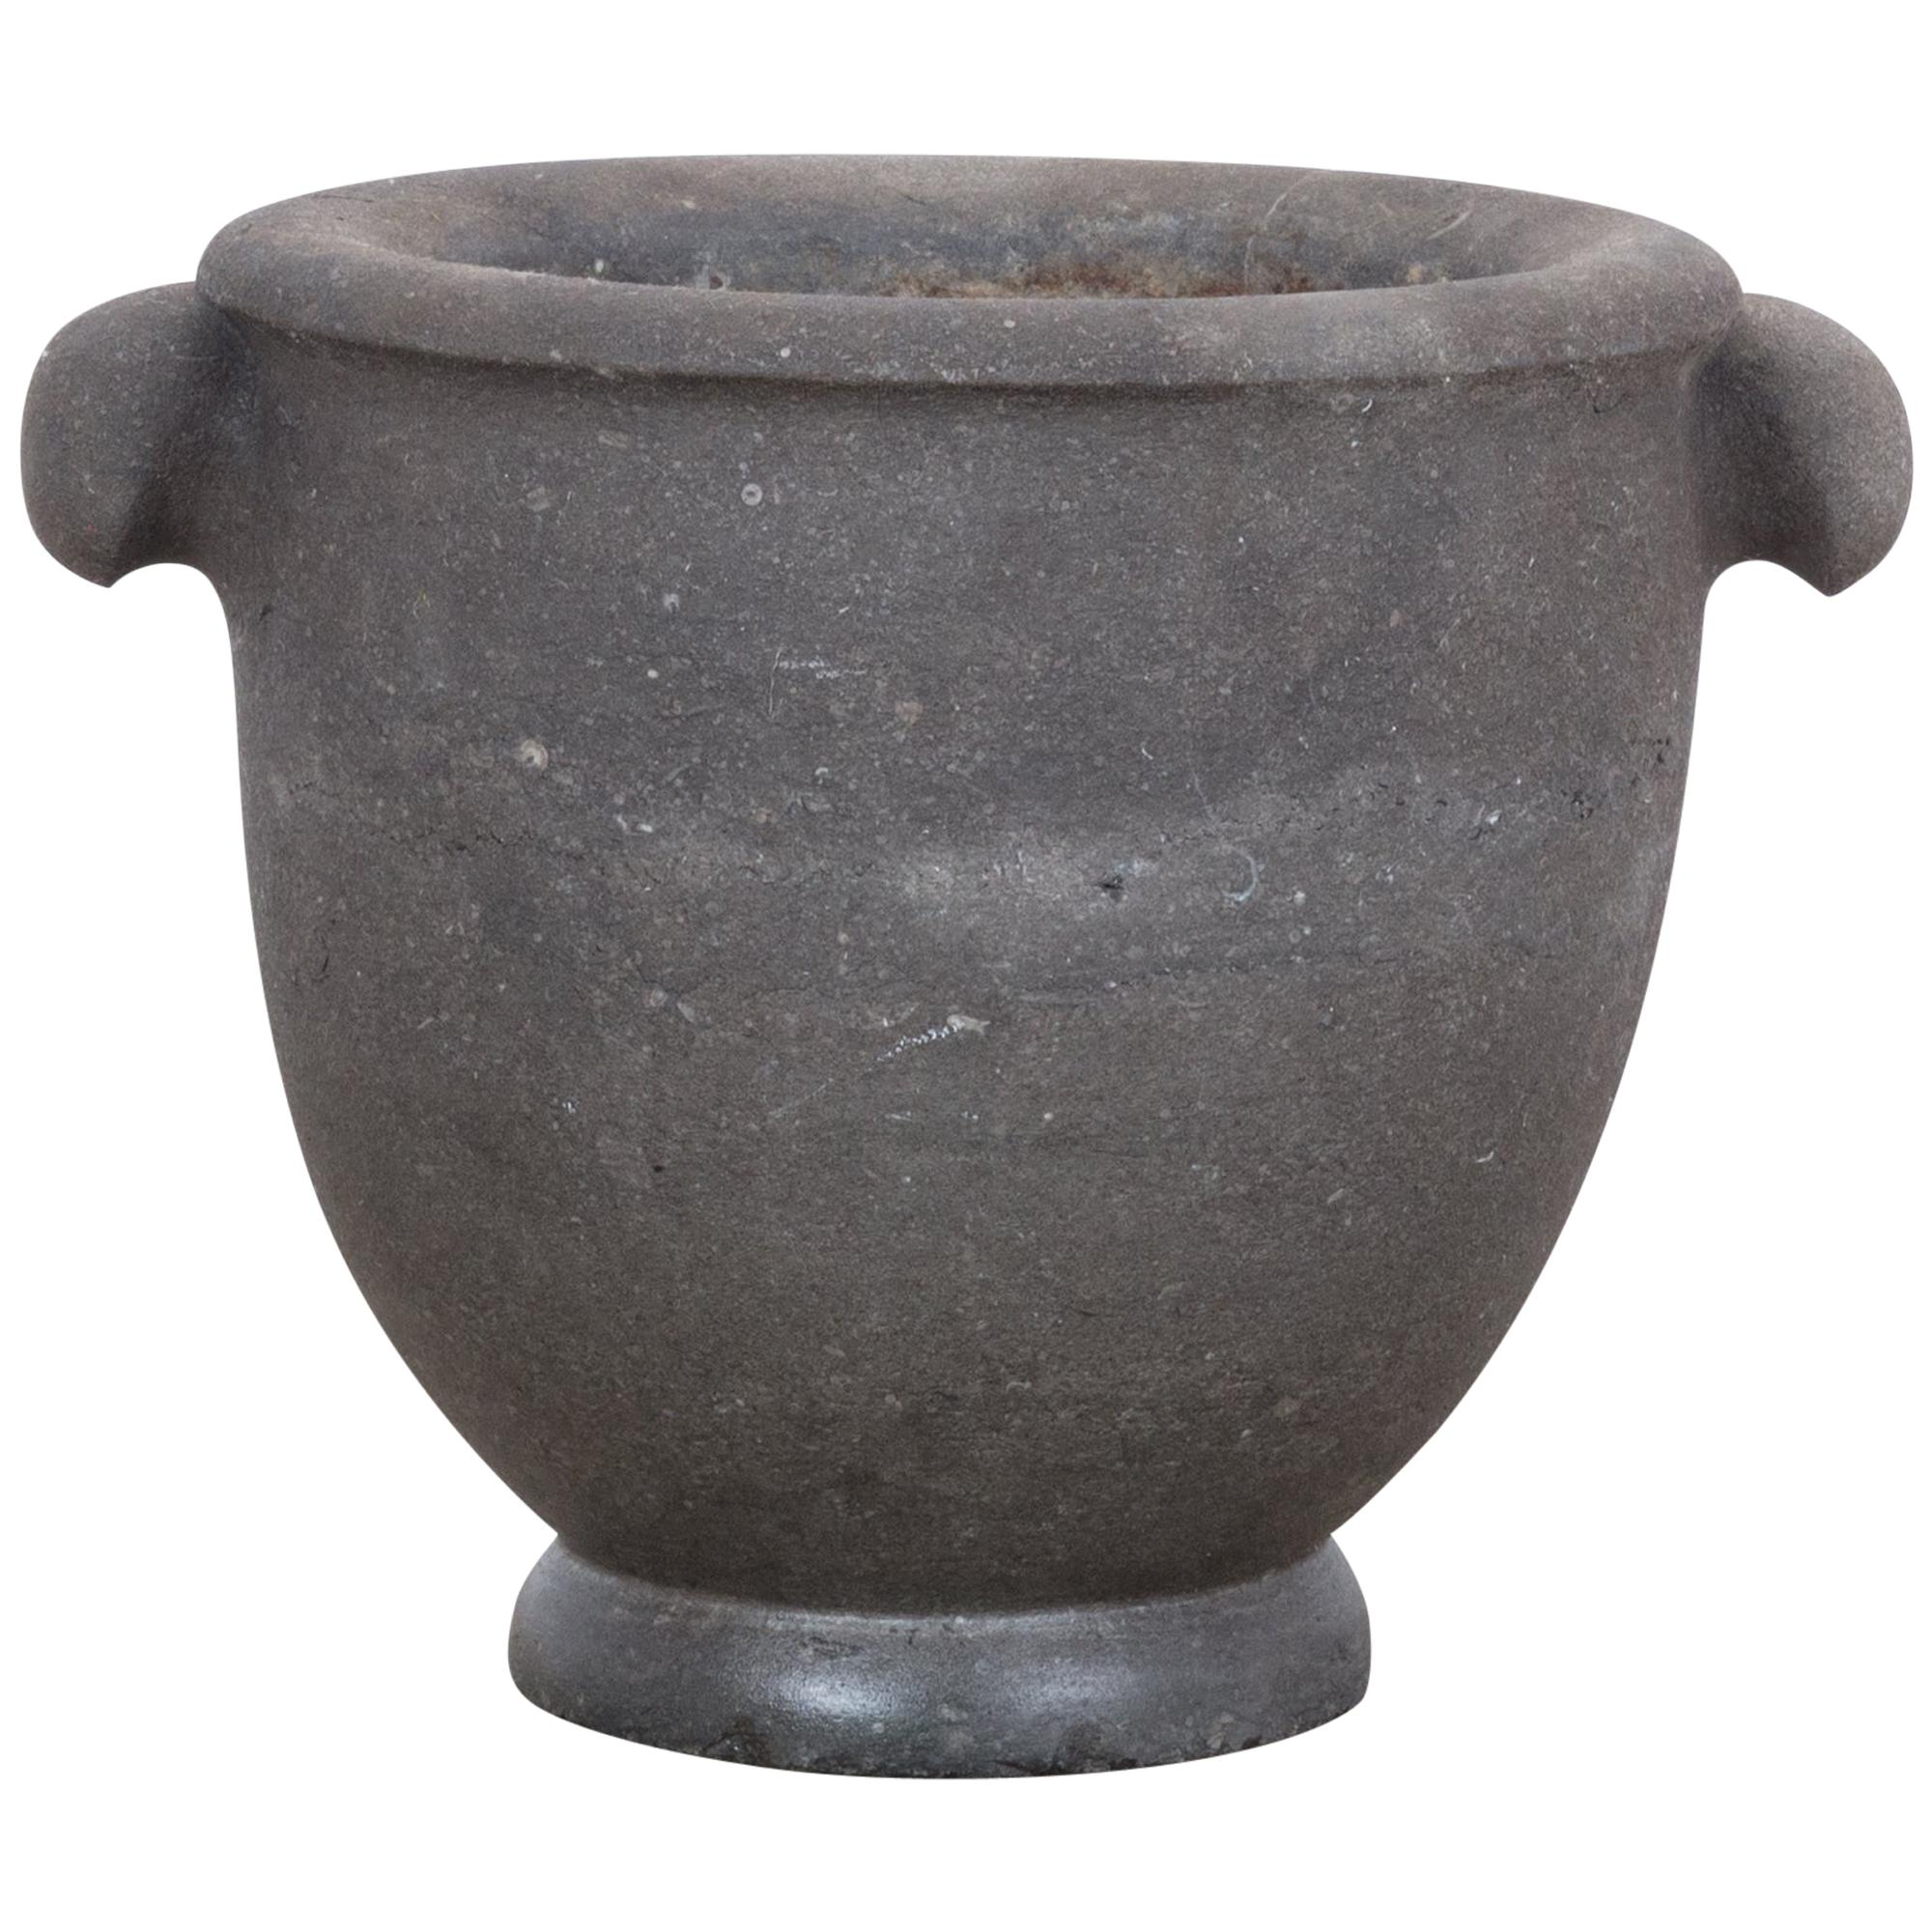 1800s Black Stone Mortar